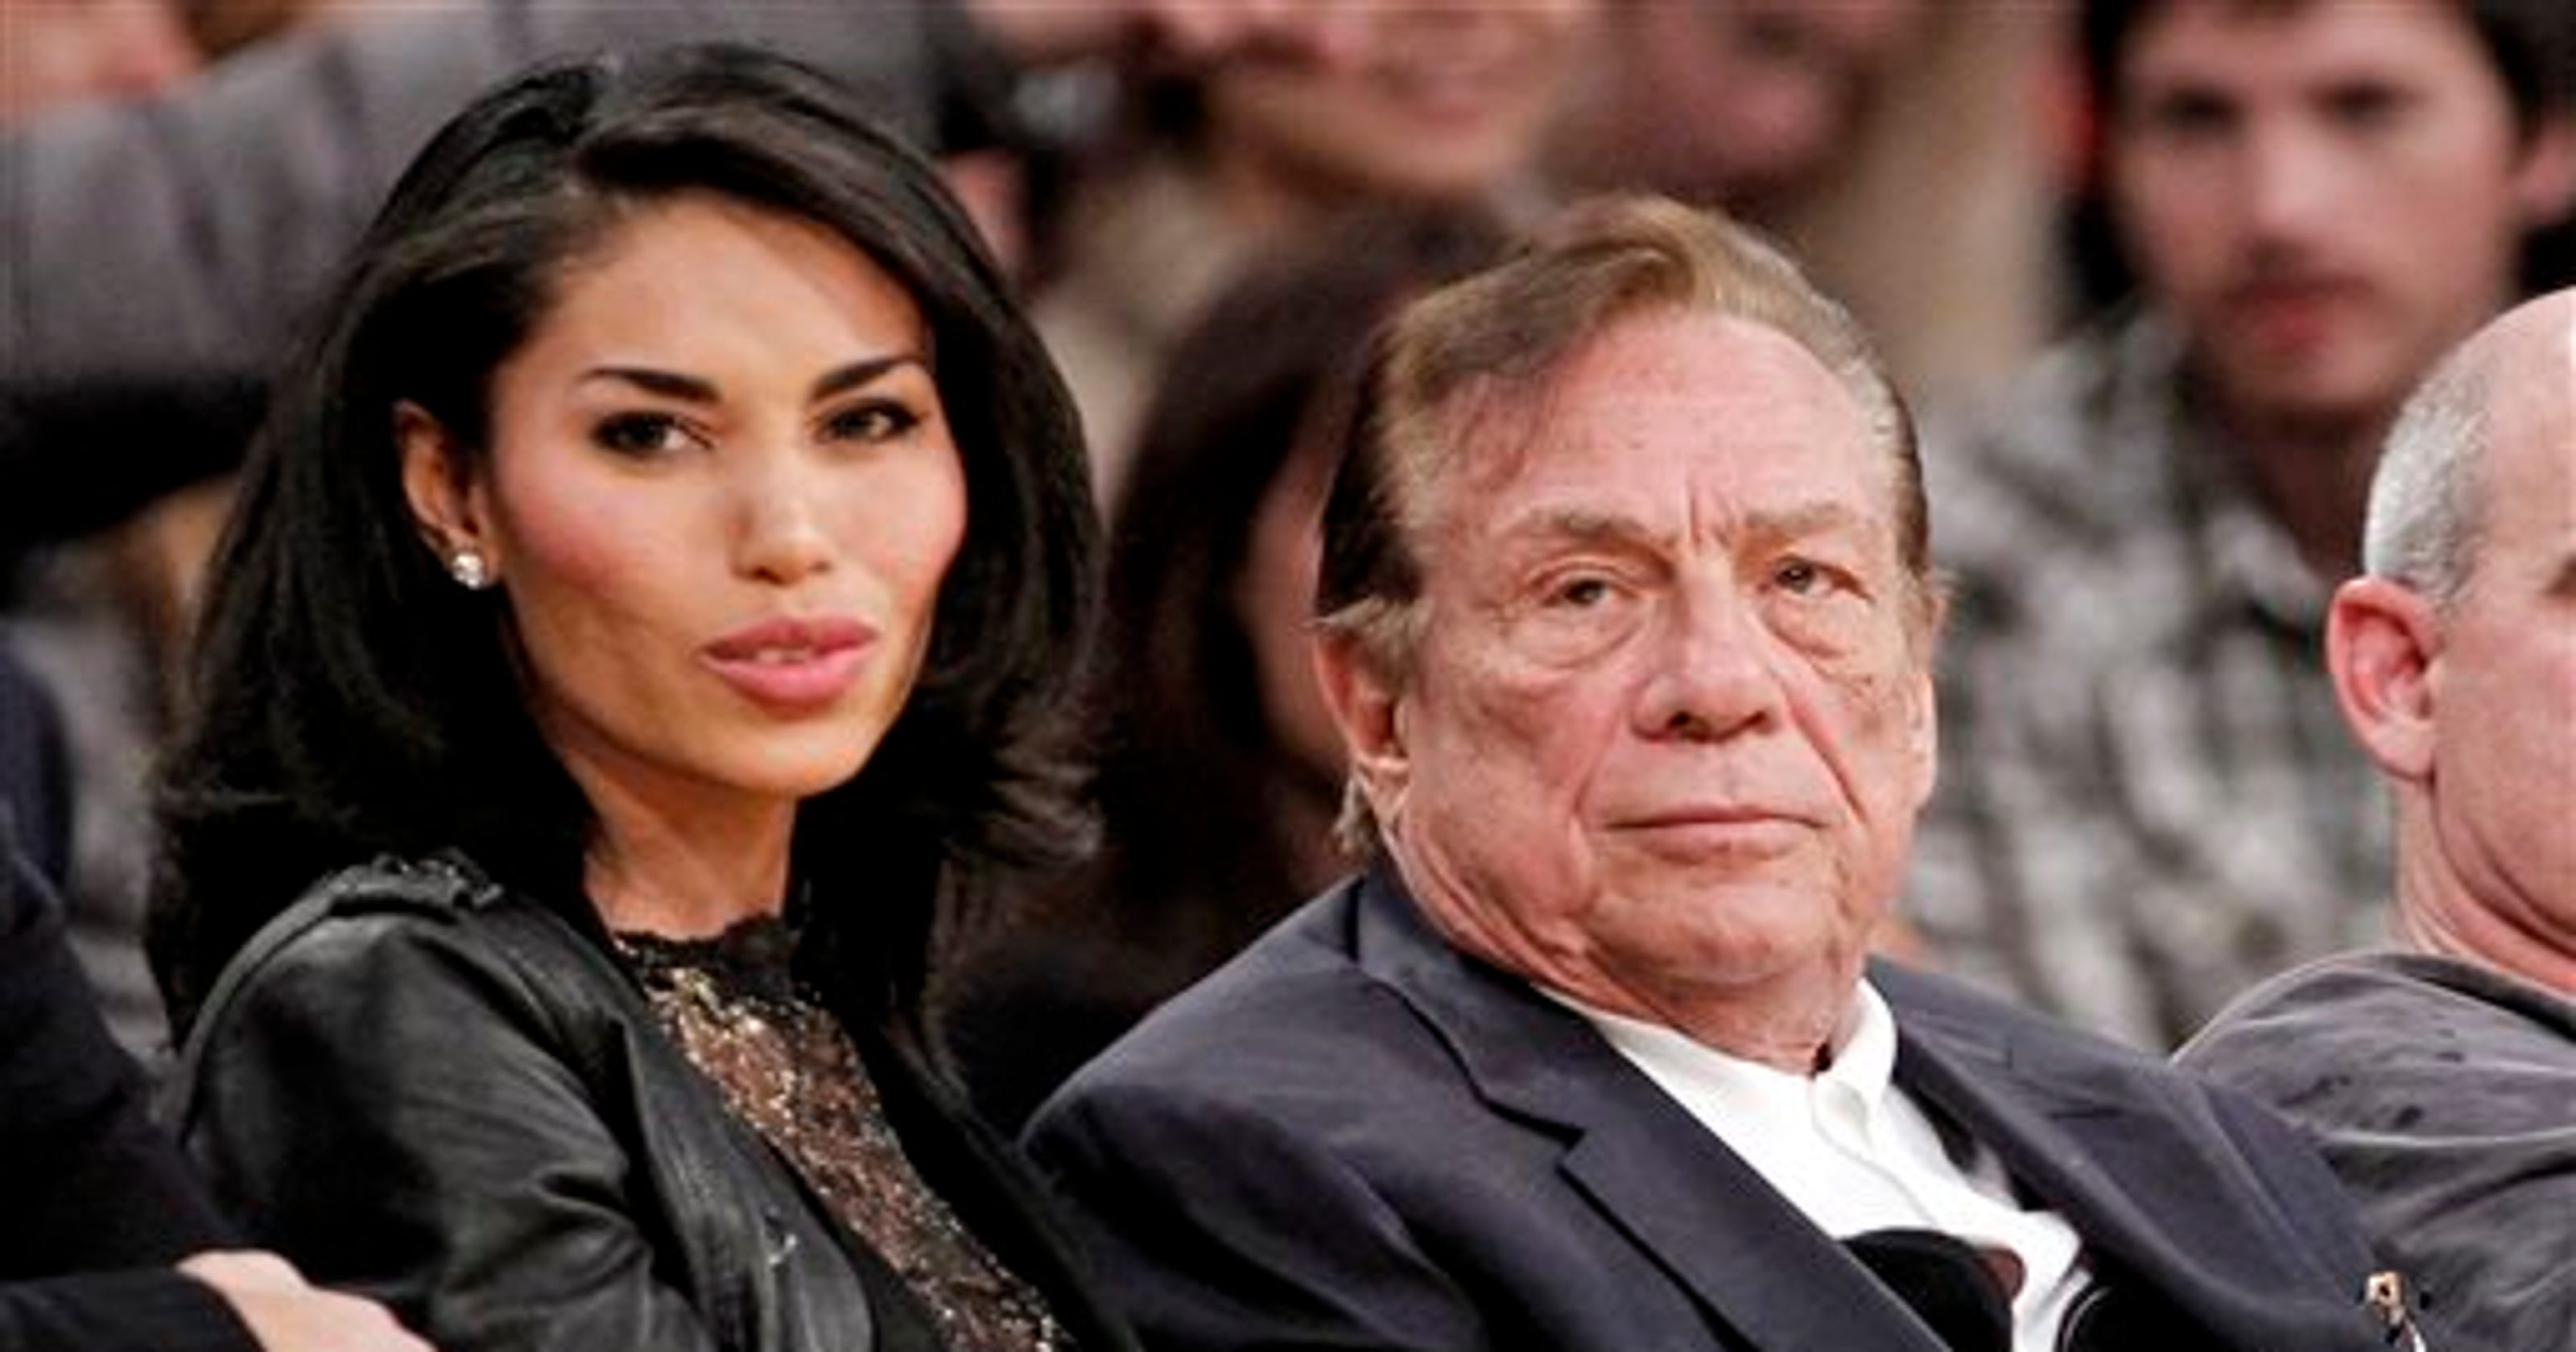 Donald Sterling's other woman loses home, gifts to wife